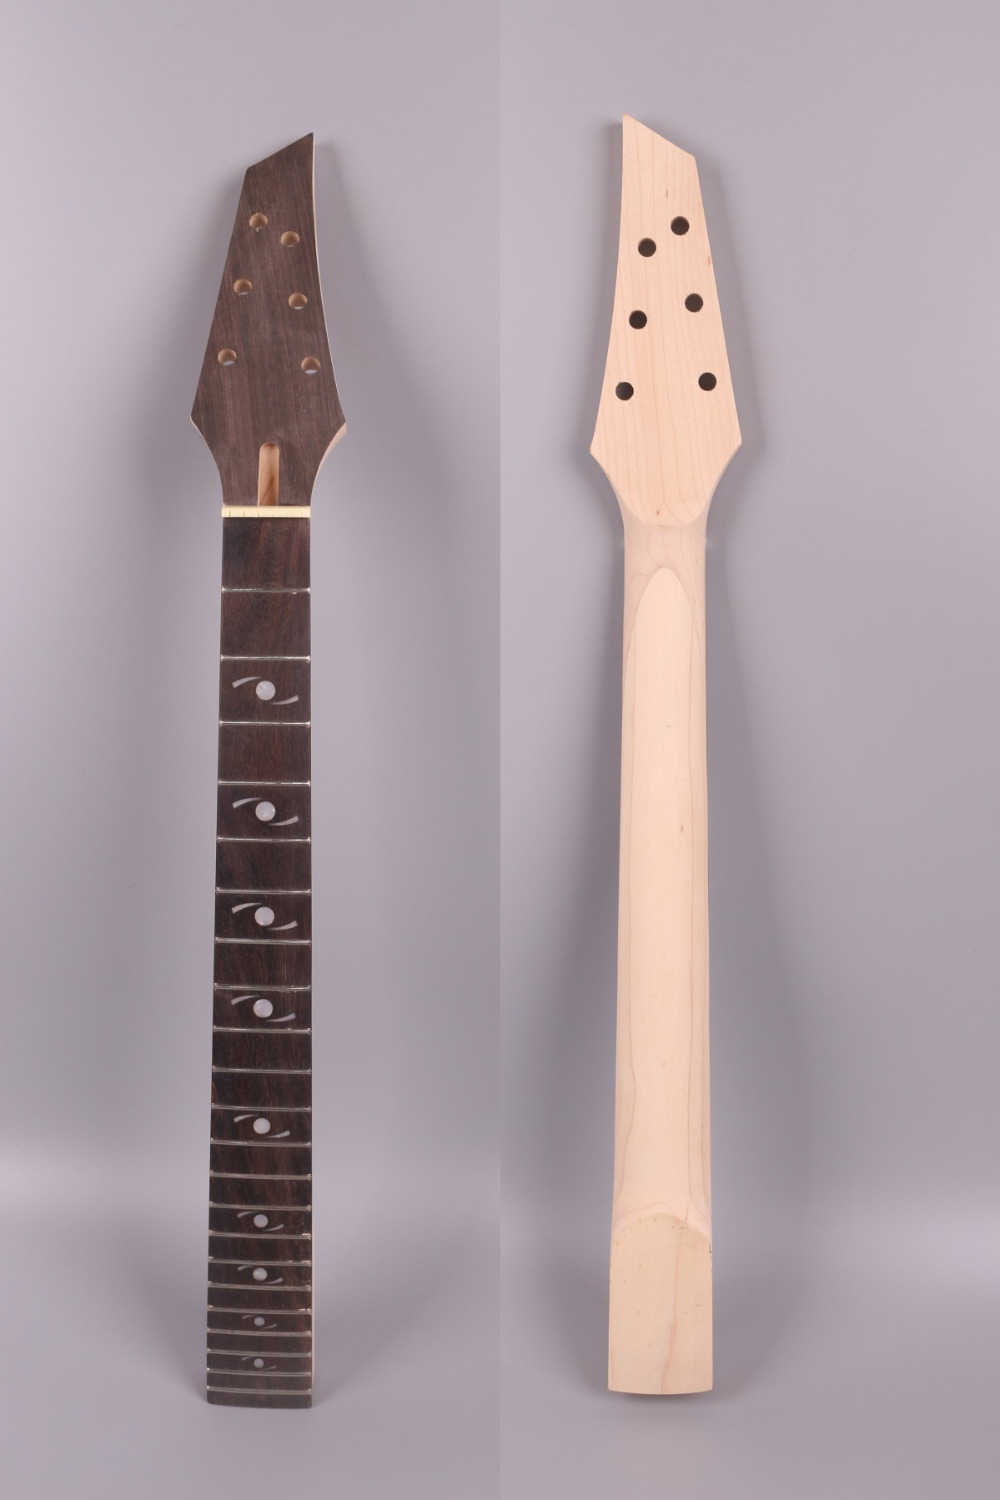 Electric guitar neck 22 fret 25.5 inch solid wood Fretboard 002 inlaid Rosewood Fretboard Bolt On Canada Maple left hand electric bass guitar neck 21 fret 34 inch maple wood rosewood fretboard 719